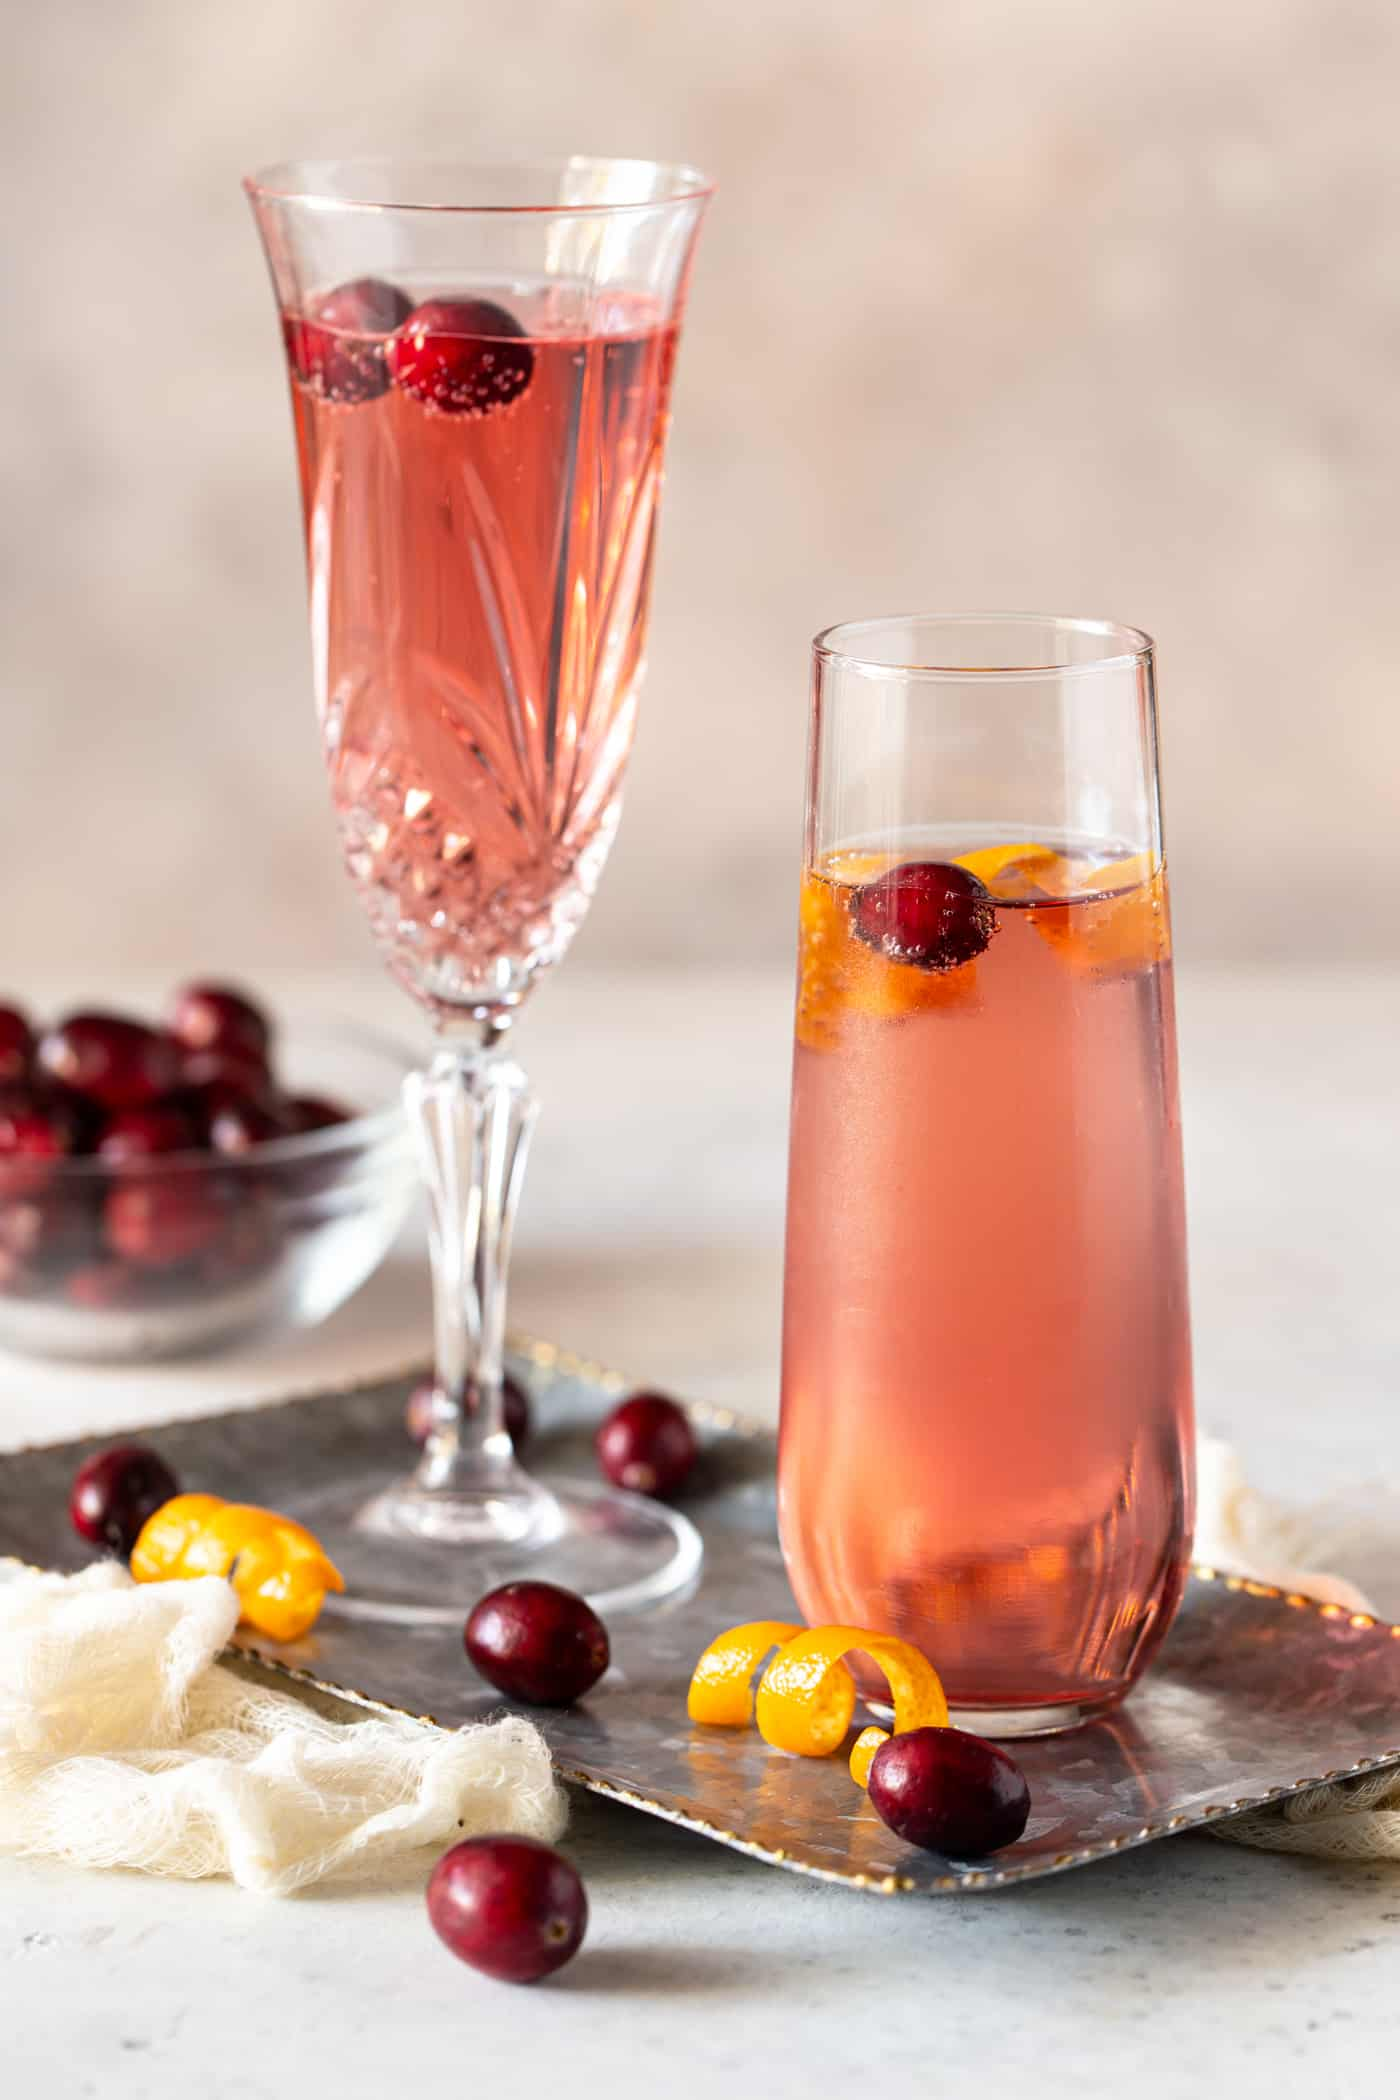 Cocktails in champagne flutes on a silver tray with fresh cranberries for garnish.